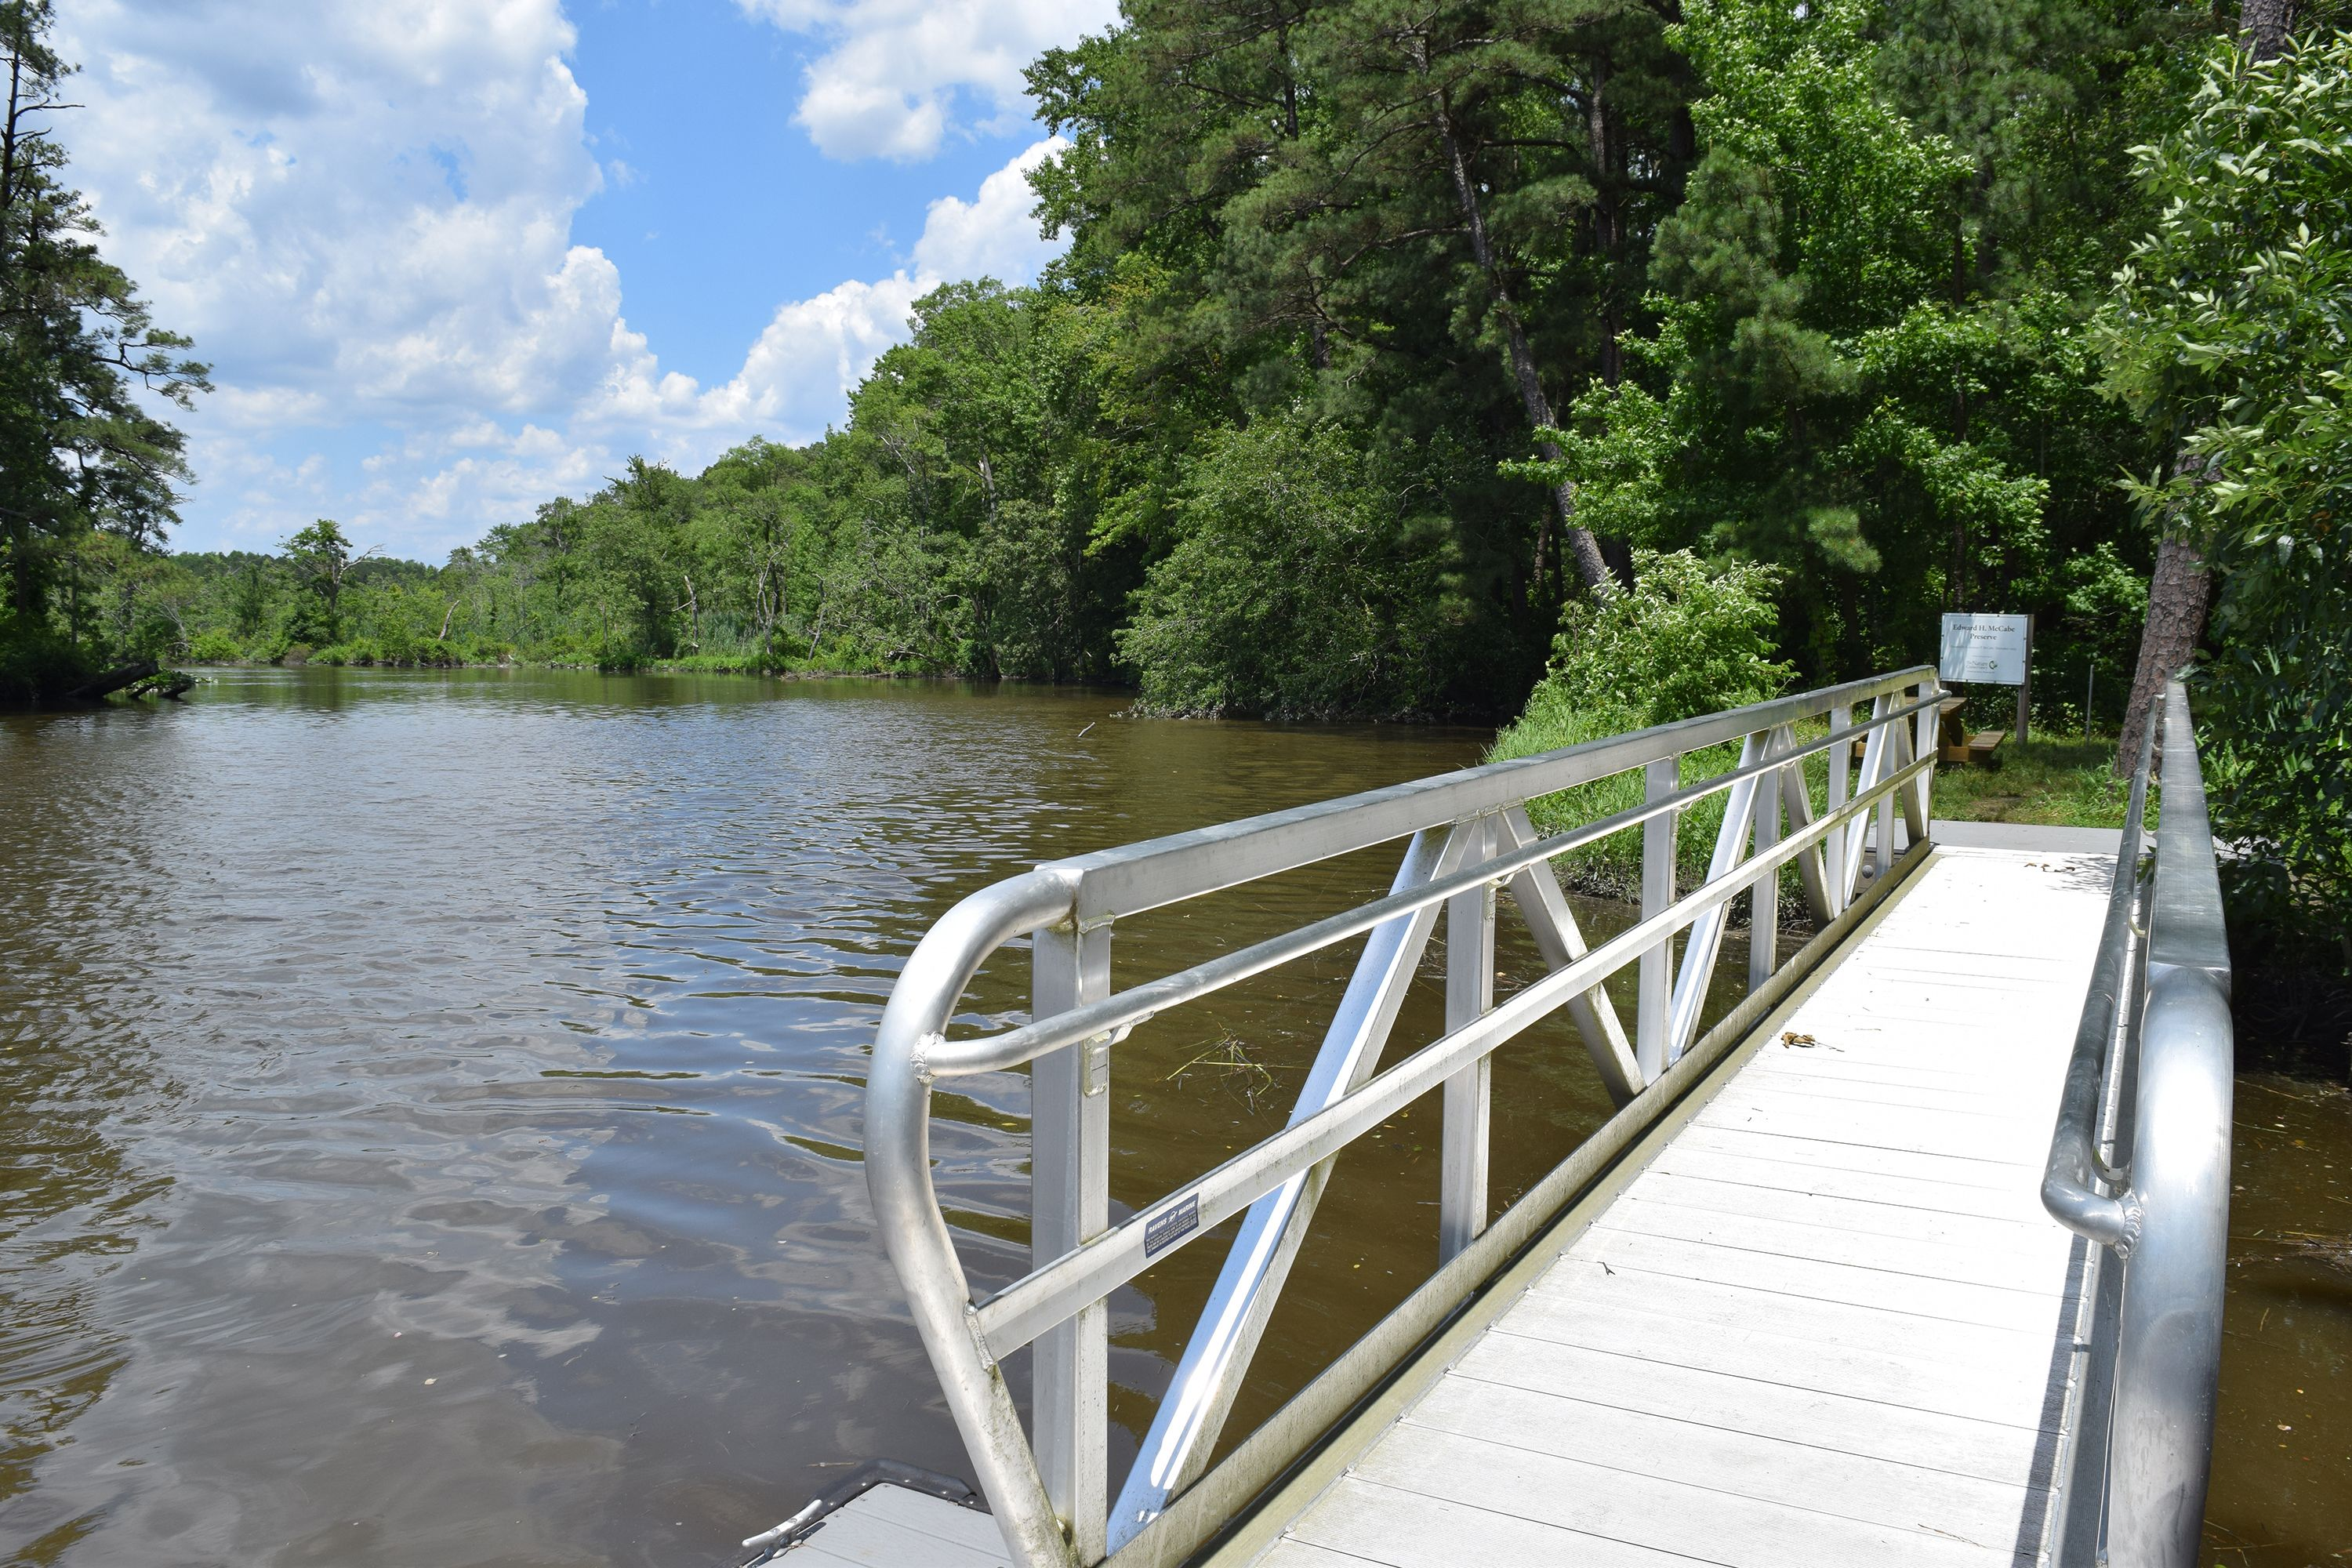 View from the end of a narrow floating dock with high metal sides. The dock leads to a path that disappears into a thick forest. Trees line the banks of the wide river that stretches to the horizon.